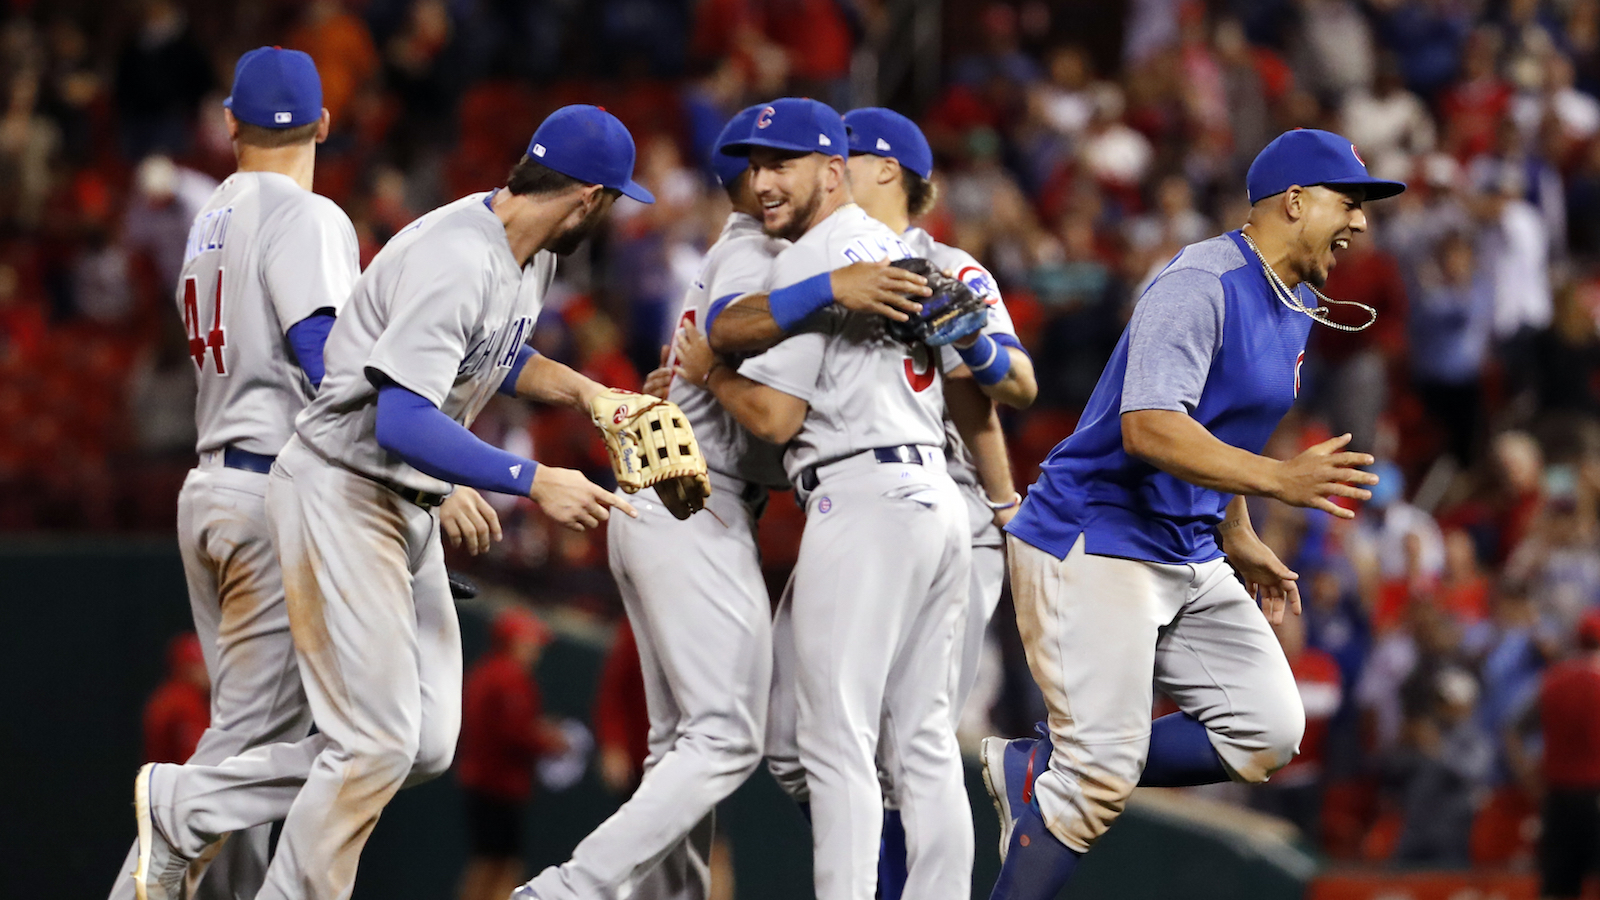 Members of the Chicago Cubs celebrate after defeating the St. Louis Cardinals in a baseball game to clinch the National League Central title Wednesday, Sept. 27, 2017, in St. Louis. (AP Photo/Jeff Roberson)